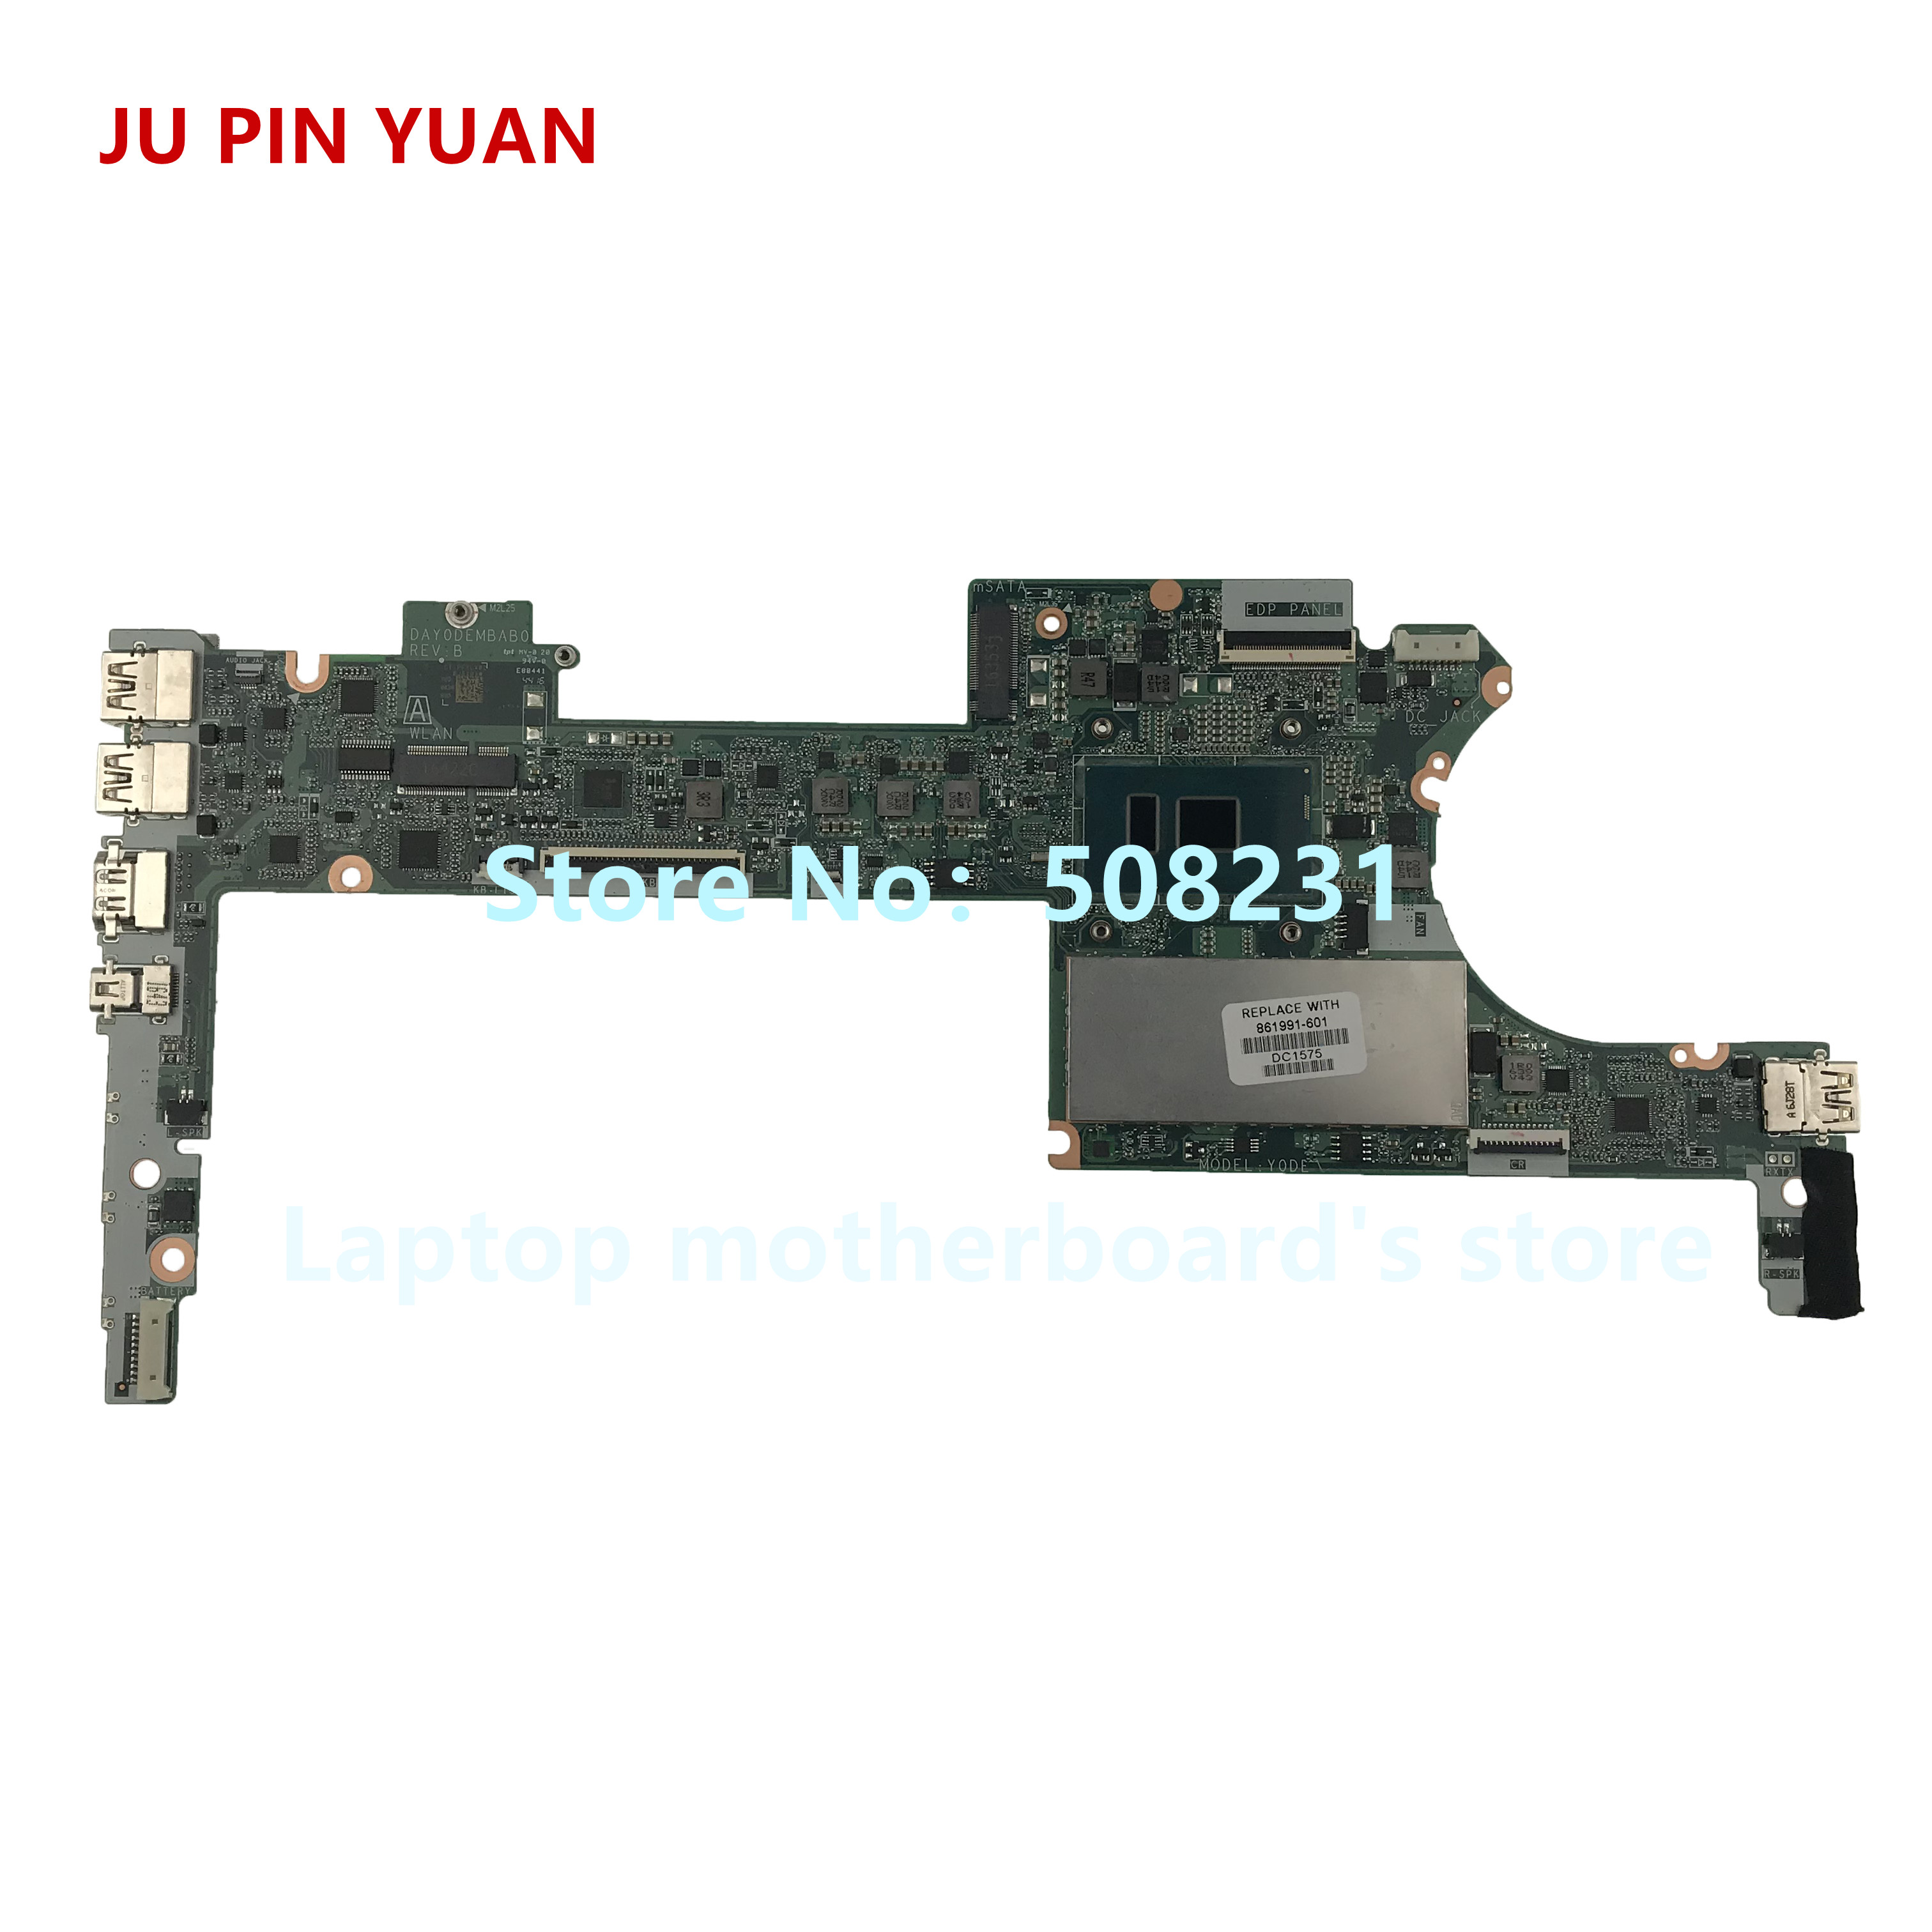 Computer & Office Ju Pin Yuan 861991-601 Day0dembab0 Laptop Motherboard For Hp Spectre X360 G2 13-4100 System Board I5-6200u 8gb Fully Tested Diversified In Packaging